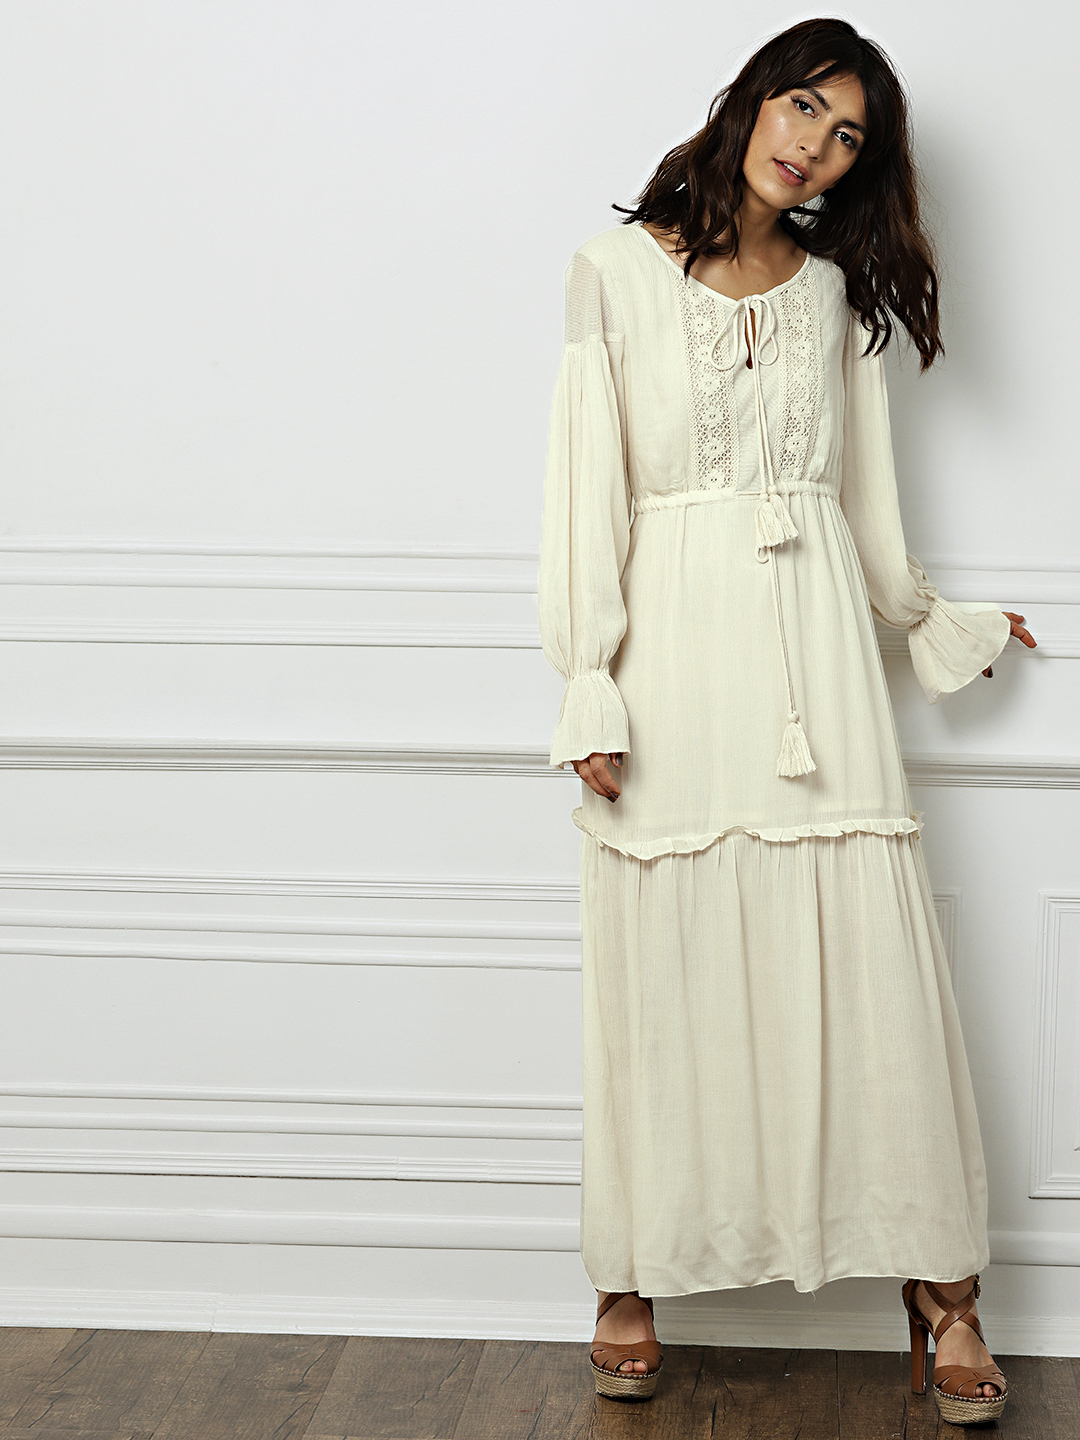 all about you Women Beige Solid Maxi Dress Price in India